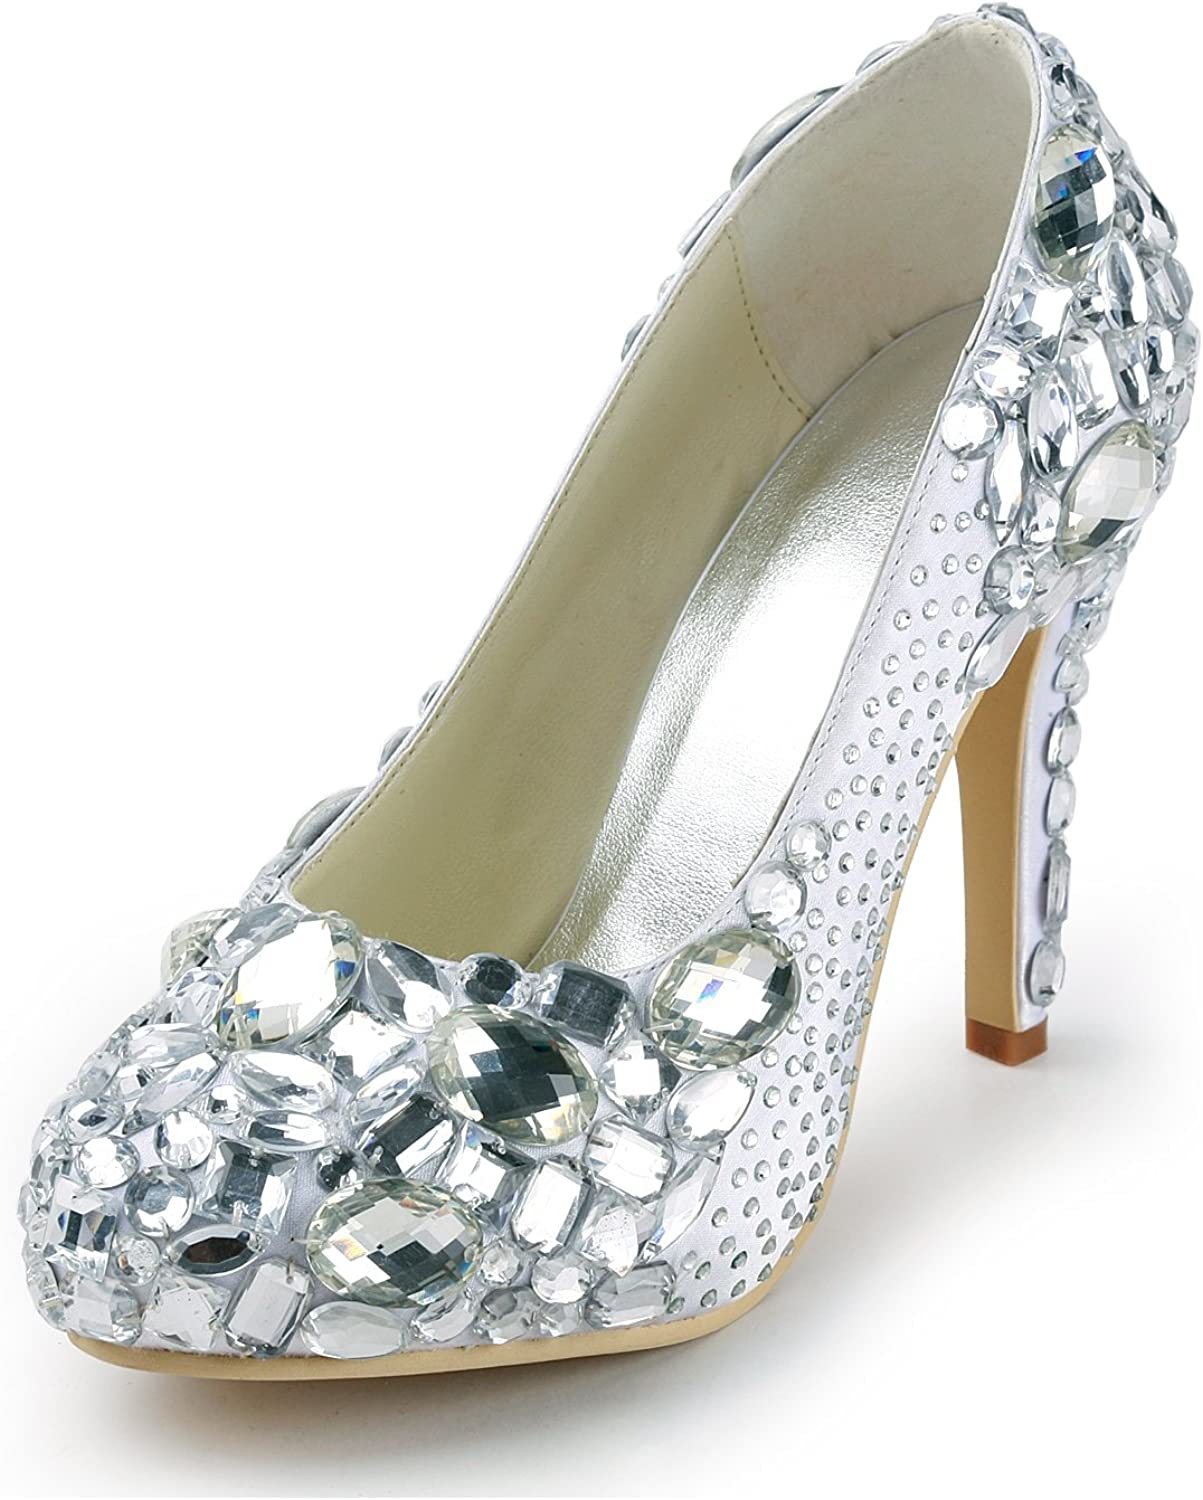 Zioso TMZ344 Women's Rhinestones Satin Bridal Wedding Evening Formal Party Pumps shoes